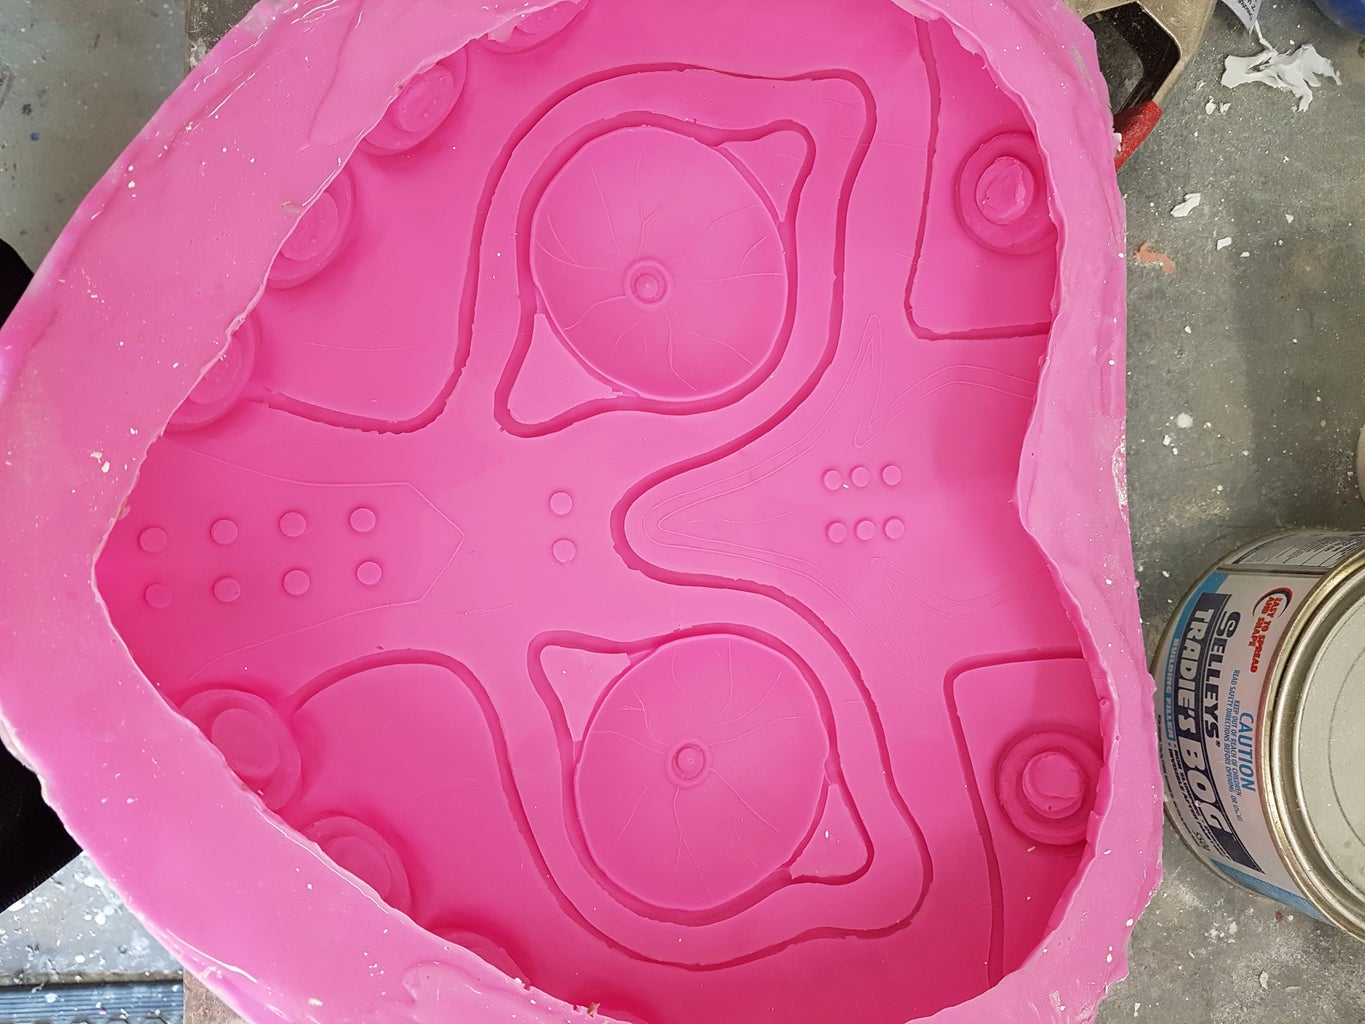 Molding and Casting